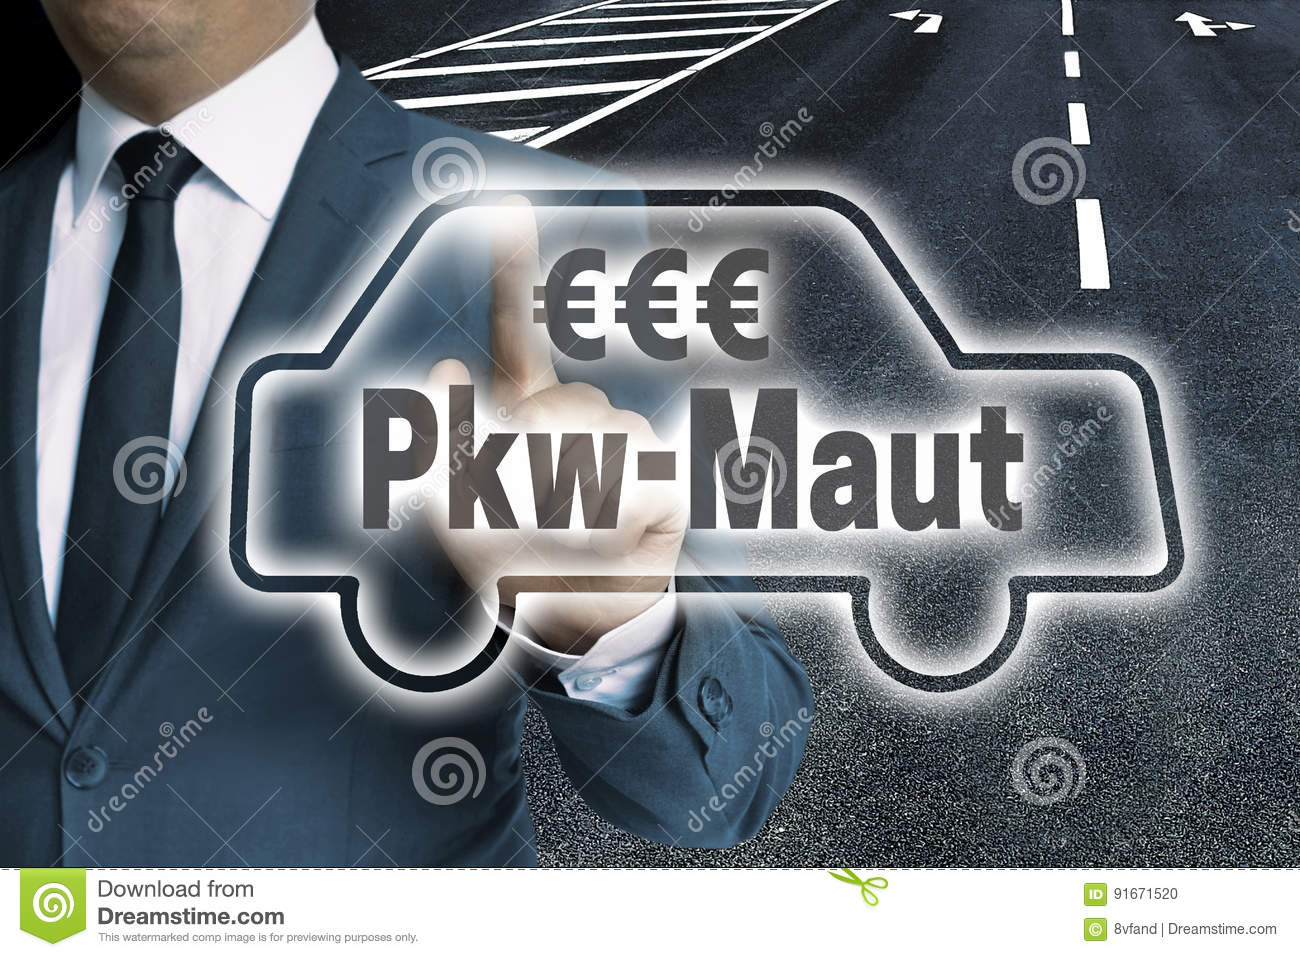 PKW-Maut in german toll car touchscreen man operated concept